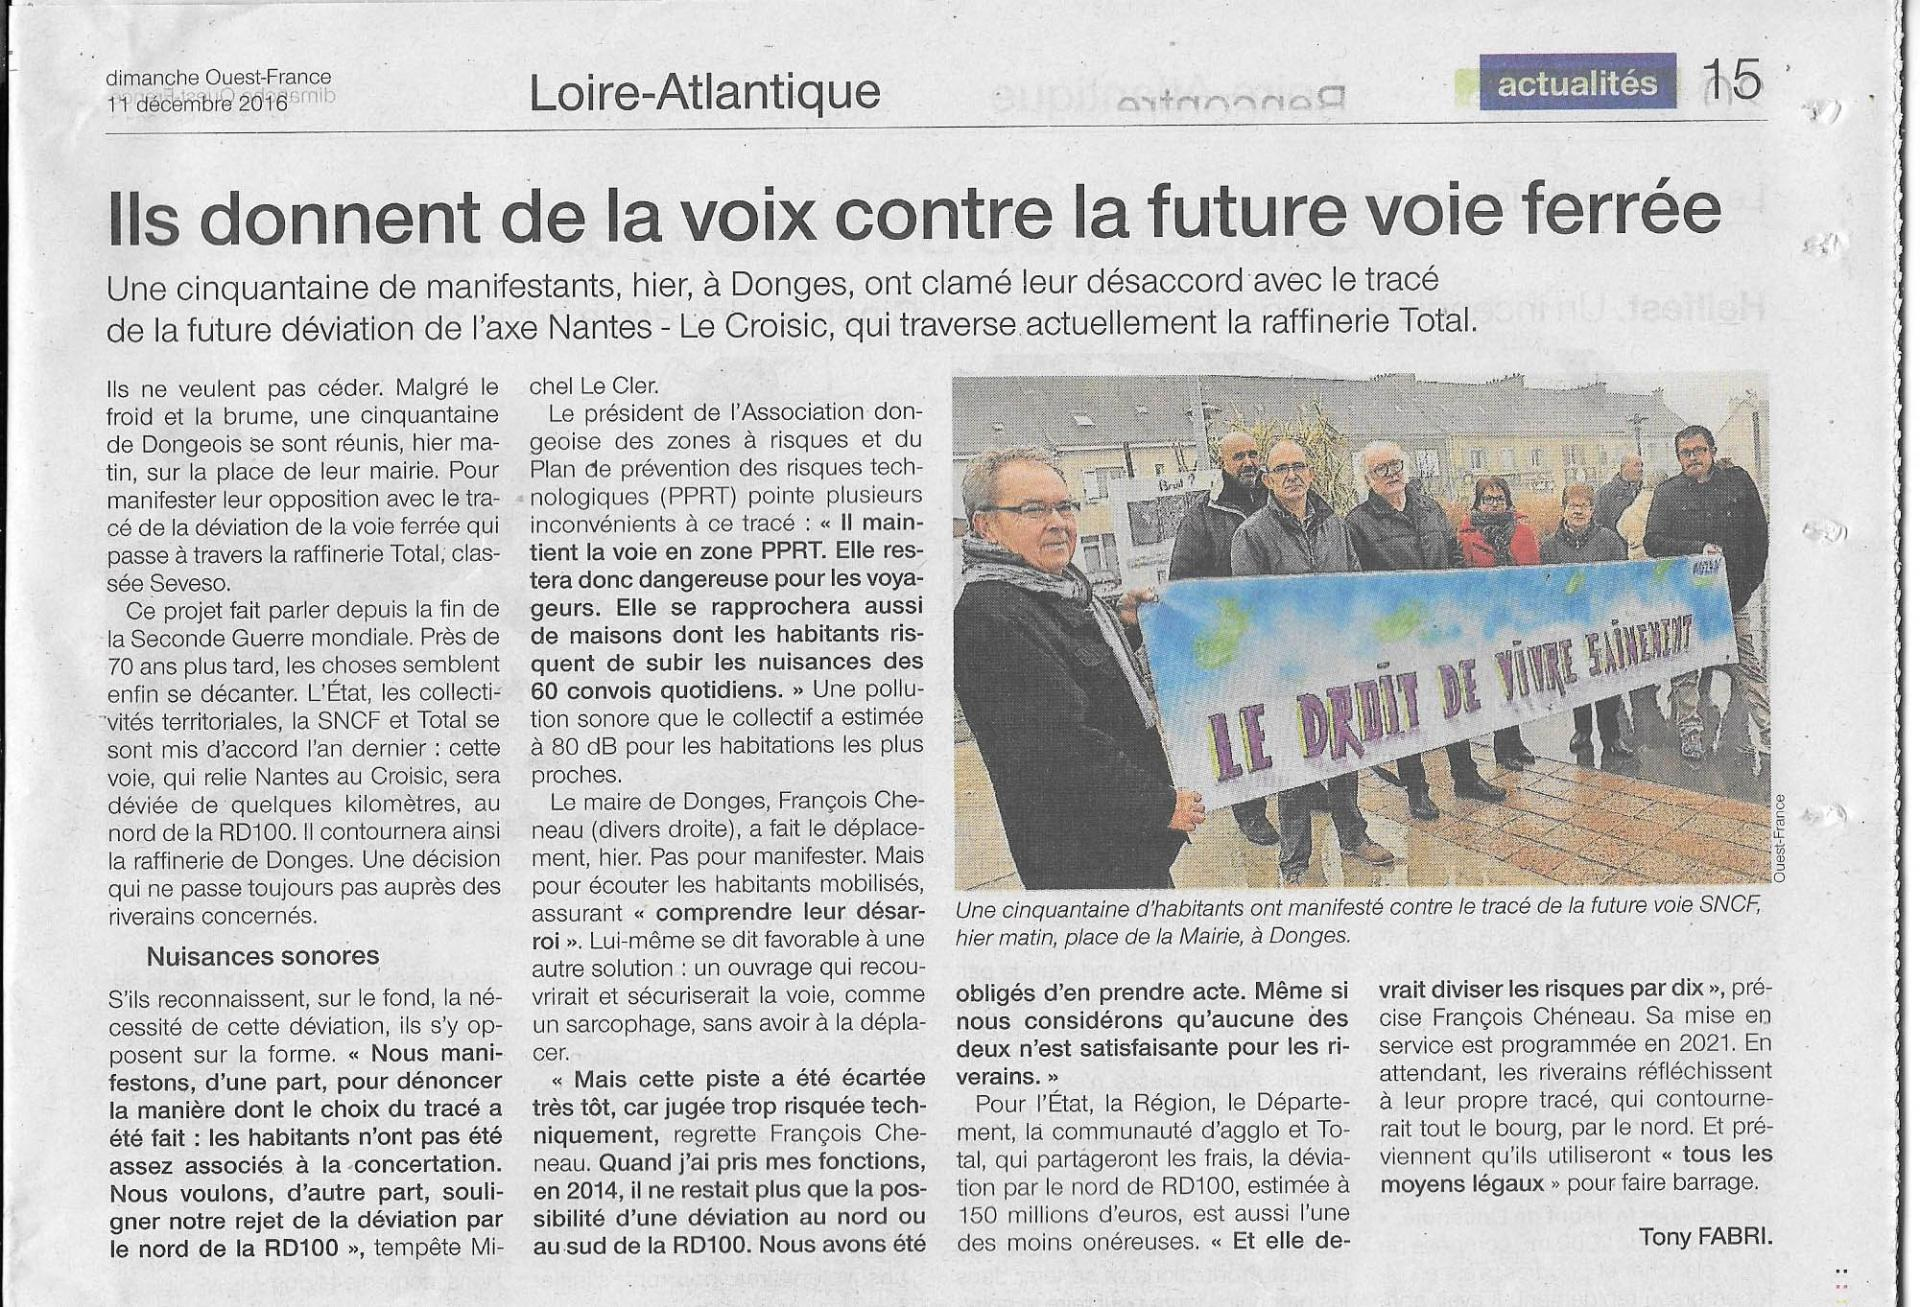 Manifestationvoieferree10122016ouest france 11 12 16